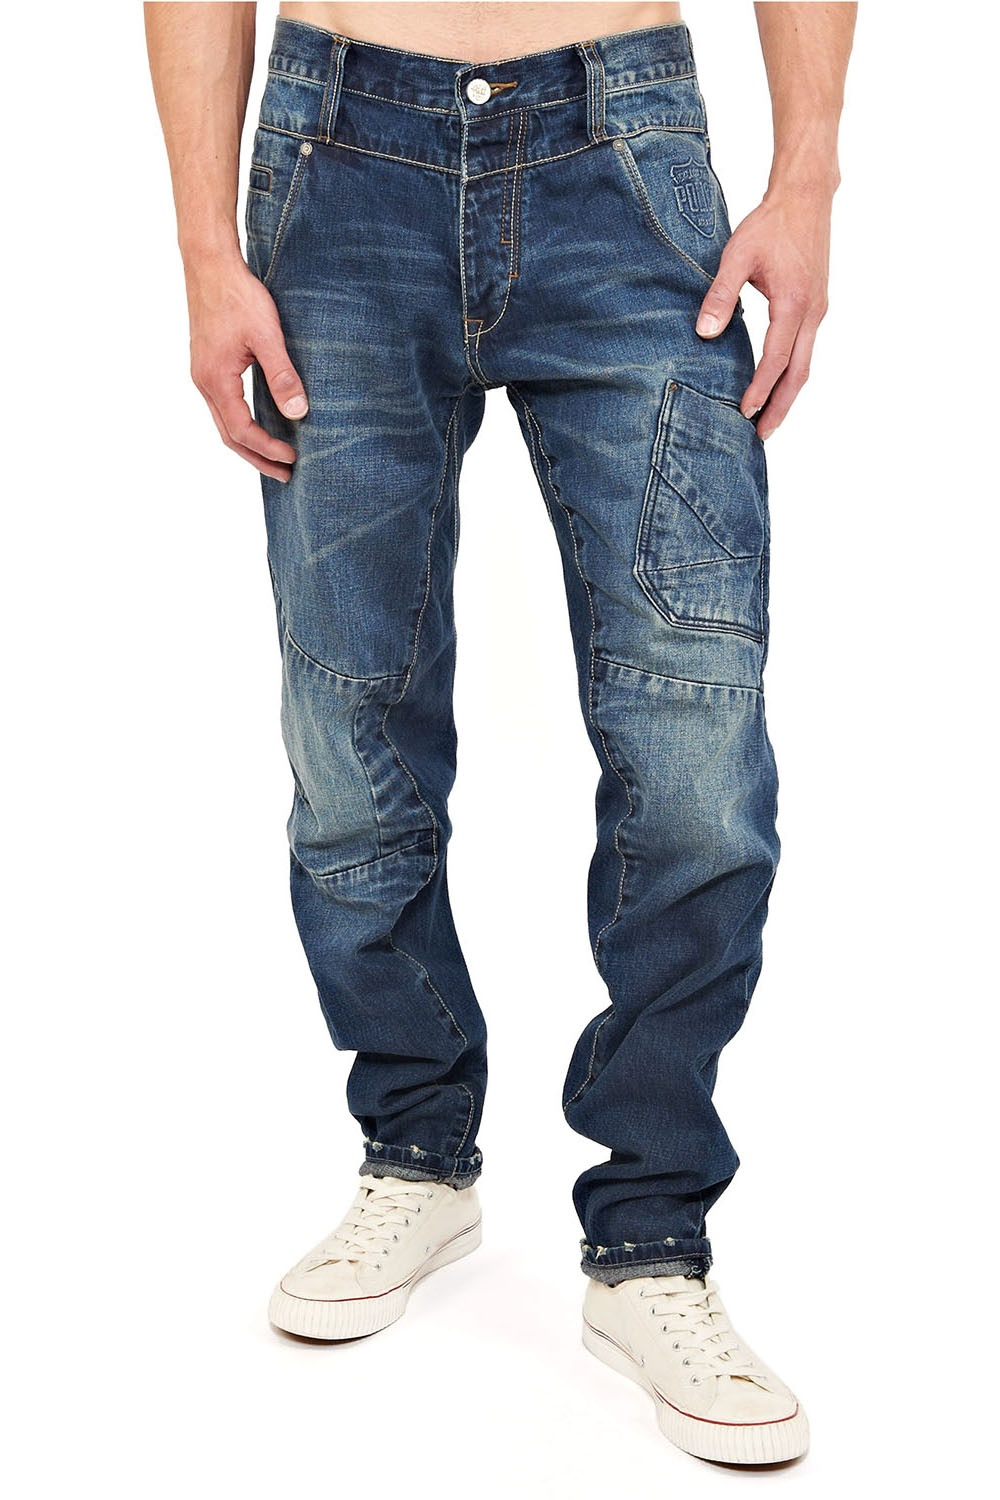 Levi's Promo Codes. Levi's is a world known fashion brand and has built is reputation for its stylish, high-quality jeans. Buy discounted Levi's clothing with a Levi's discount code from.